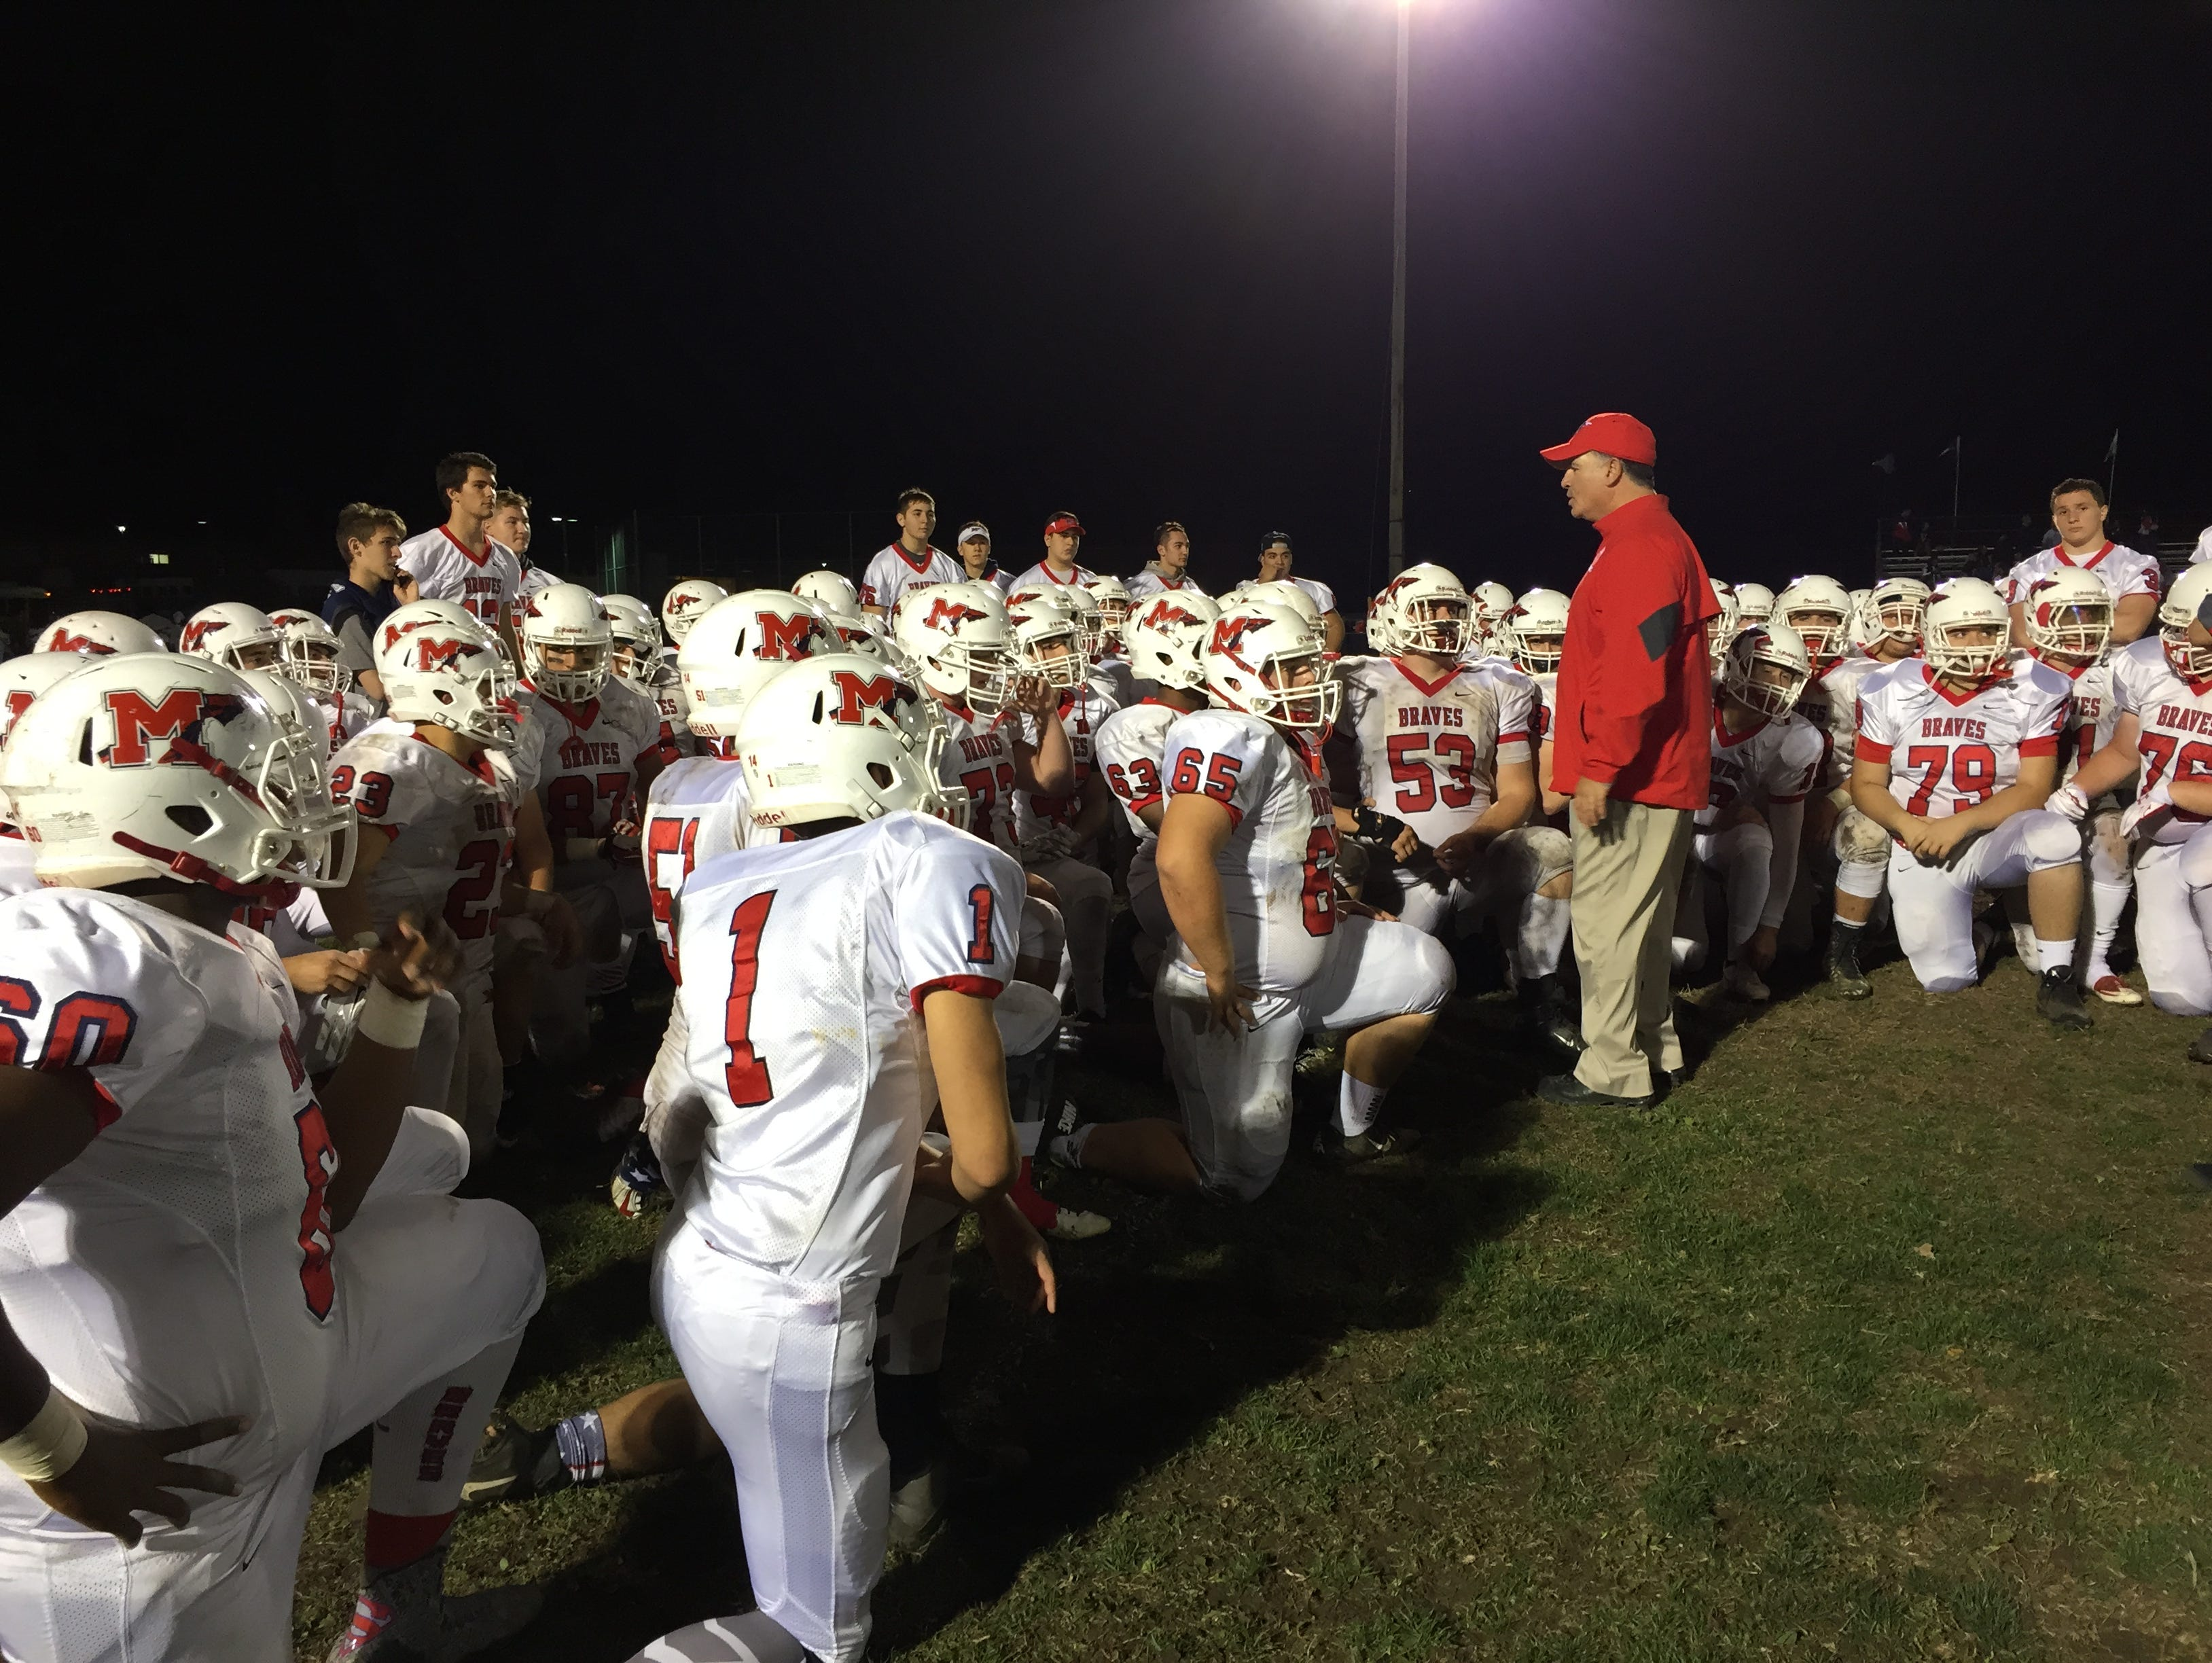 Manalapan football coach Ed Gurrieri congratulates his players after their 42-0 win over Howell.